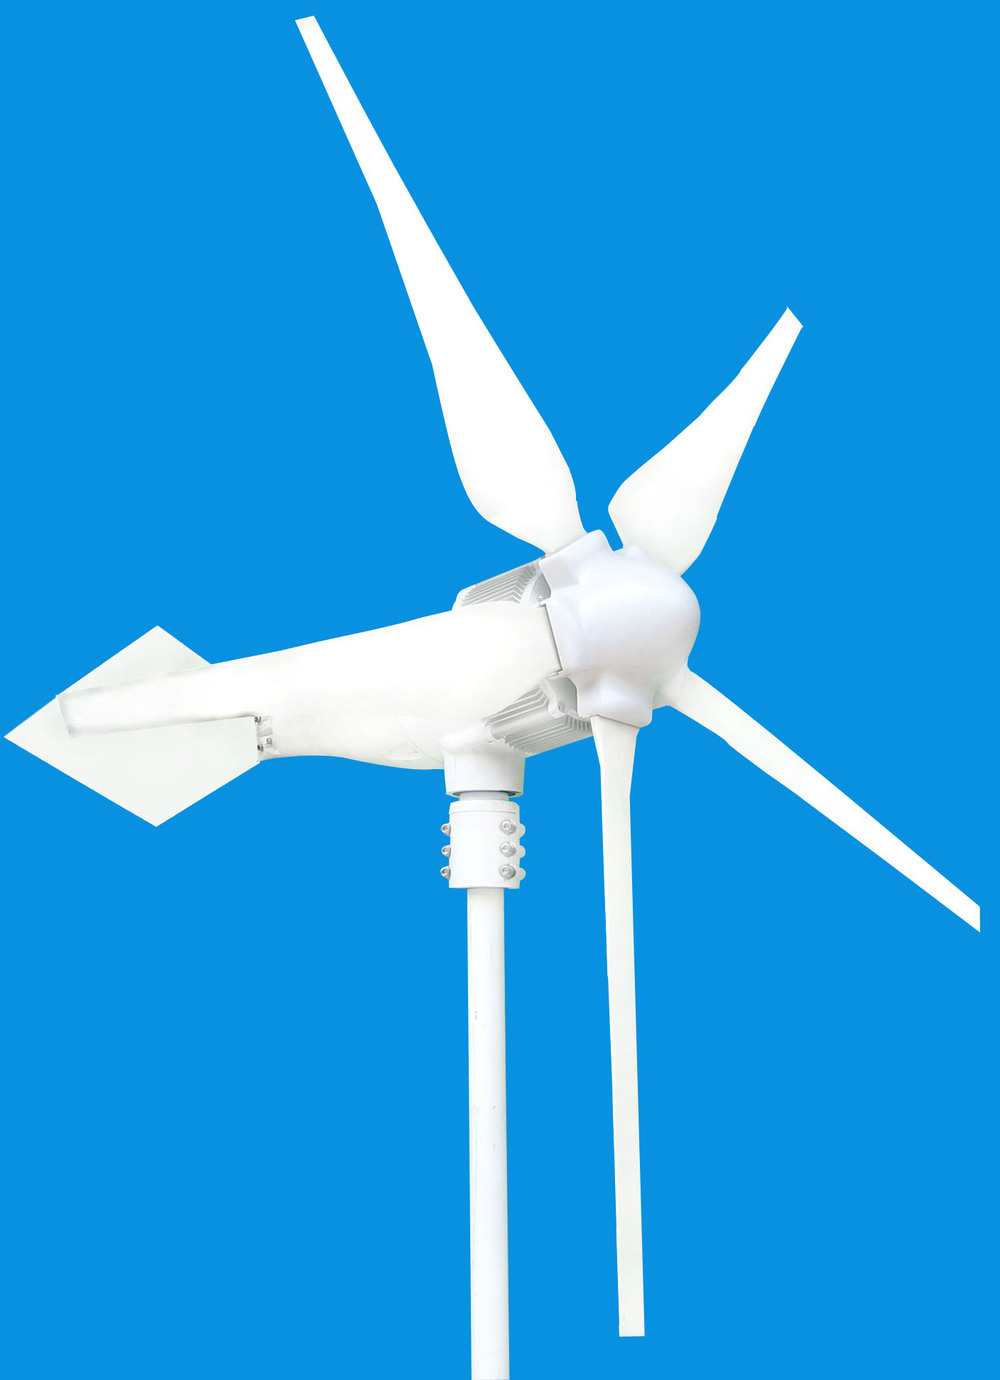 wind turbine 800w wind generator 5years warranty hybrid solar wind power generator